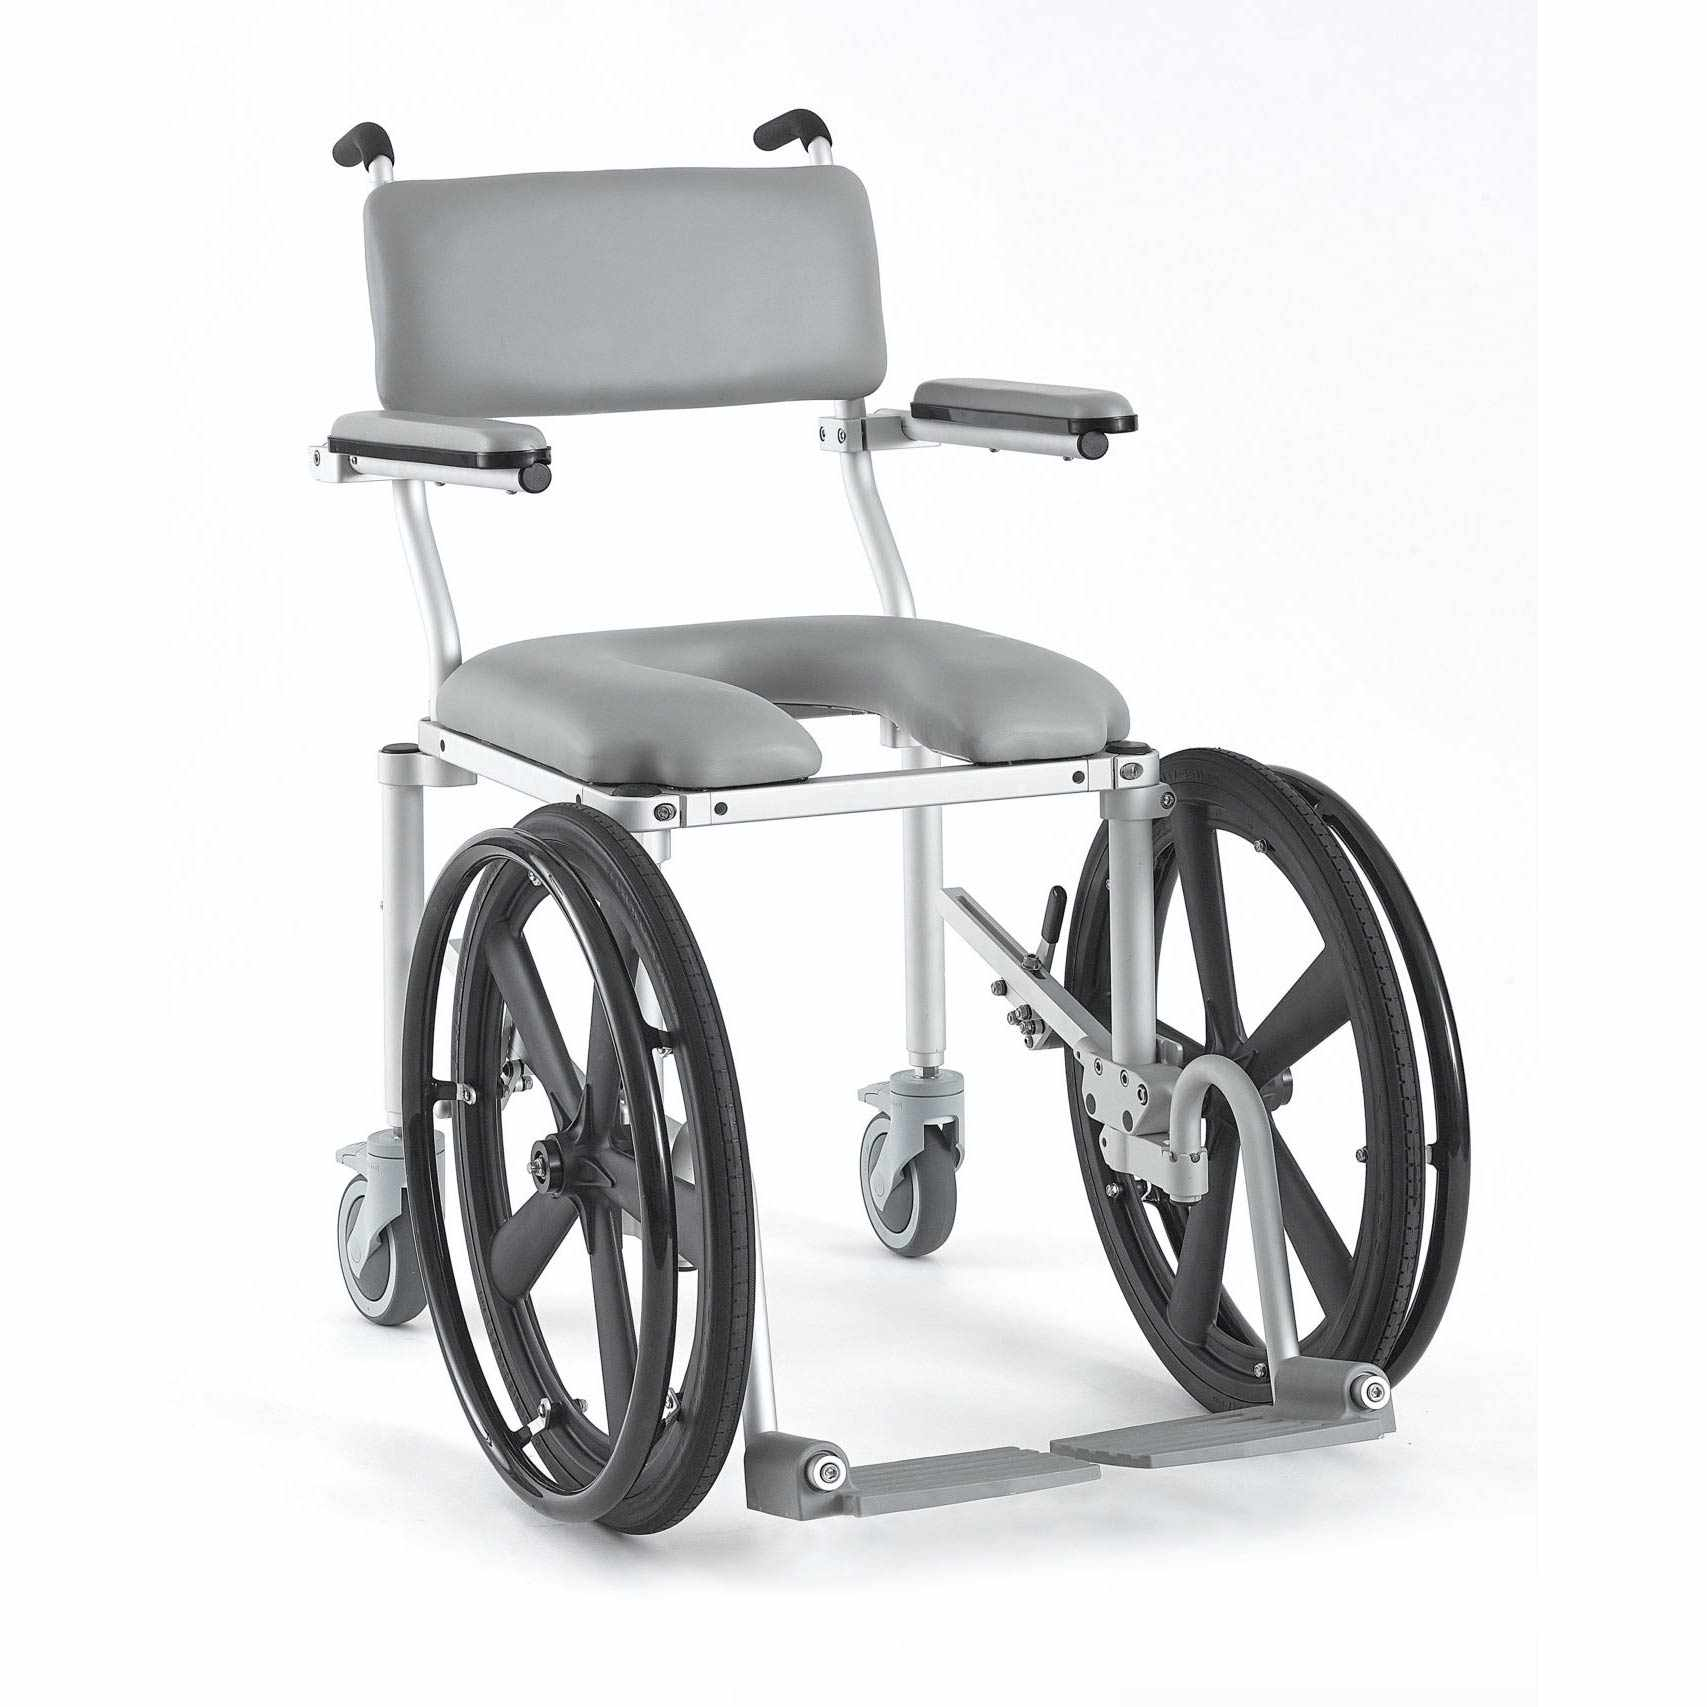 Nuprodx 4020Rx Roll-In-Shower Commode Chair | Medicaleshop